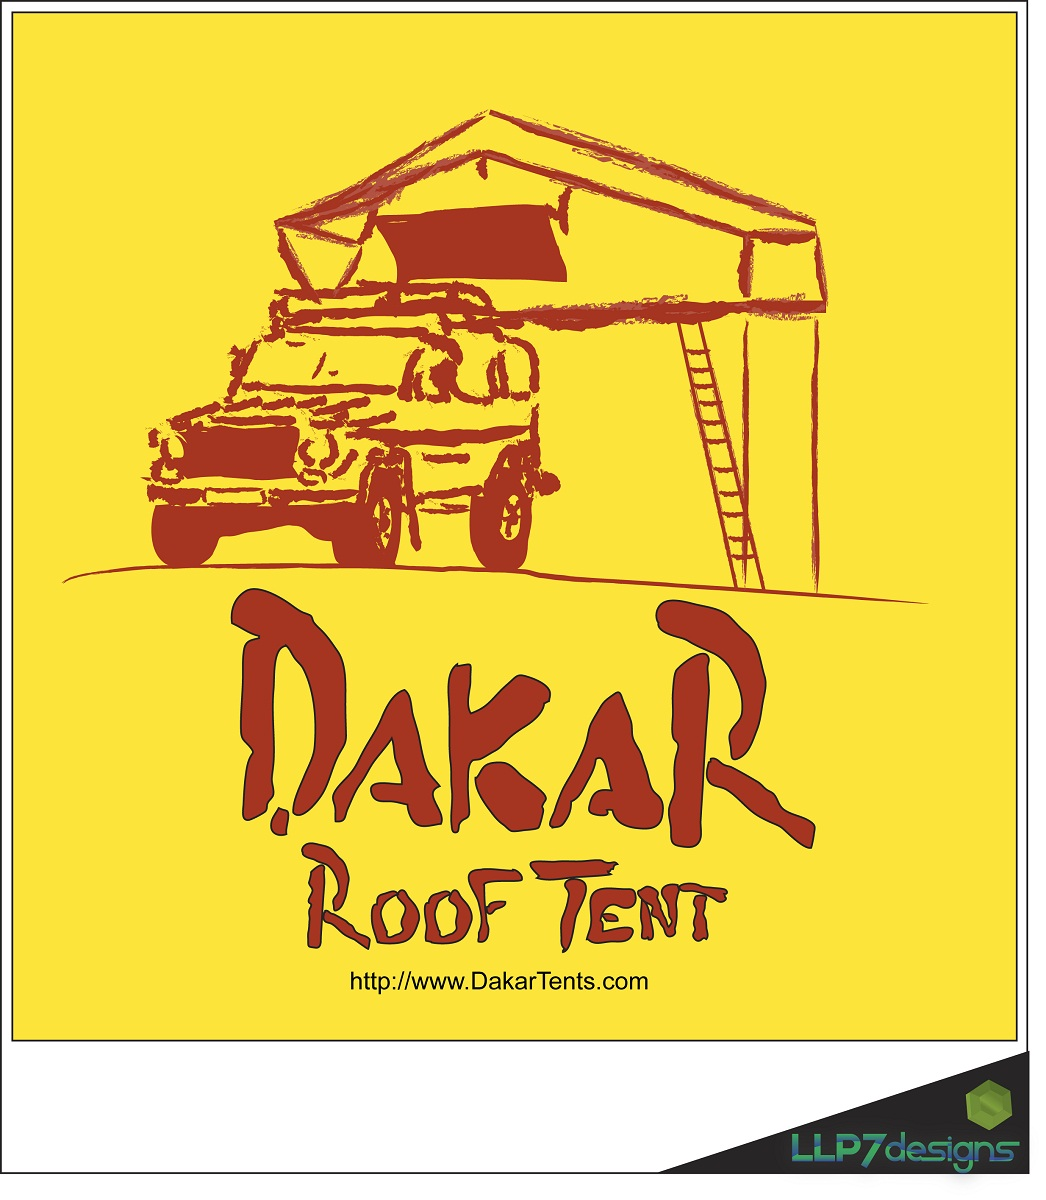 Logo Design by LLP7 - Entry No. 56 in the Logo Design Contest Dakar Roof Tents.